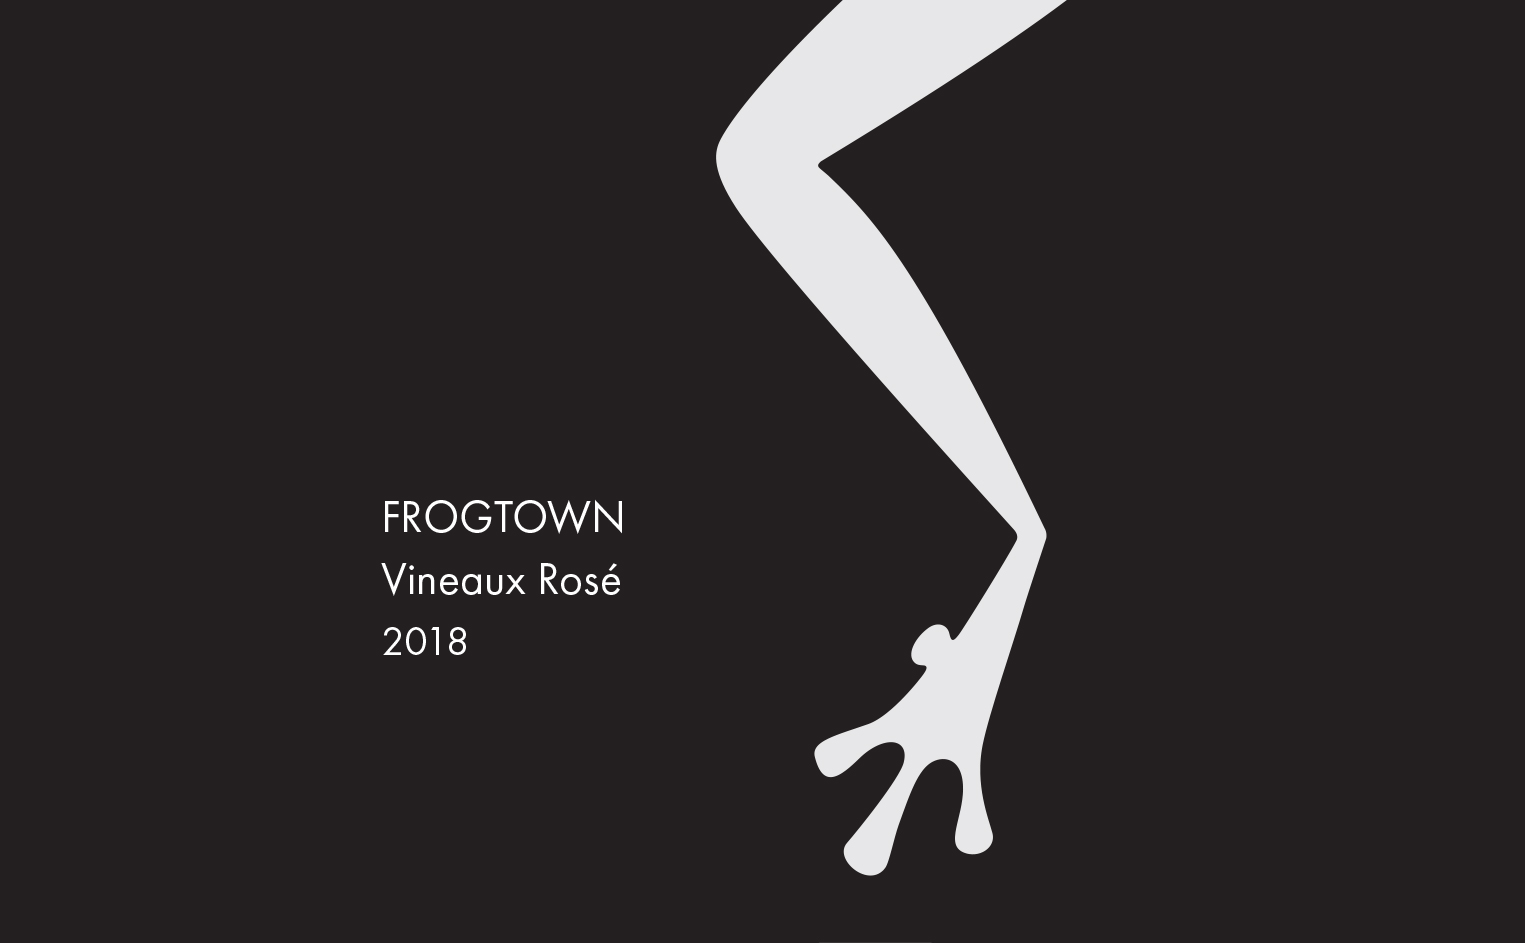 <b>Frogtown</b></br>Vineaux Rosé</br>2018 MAIN